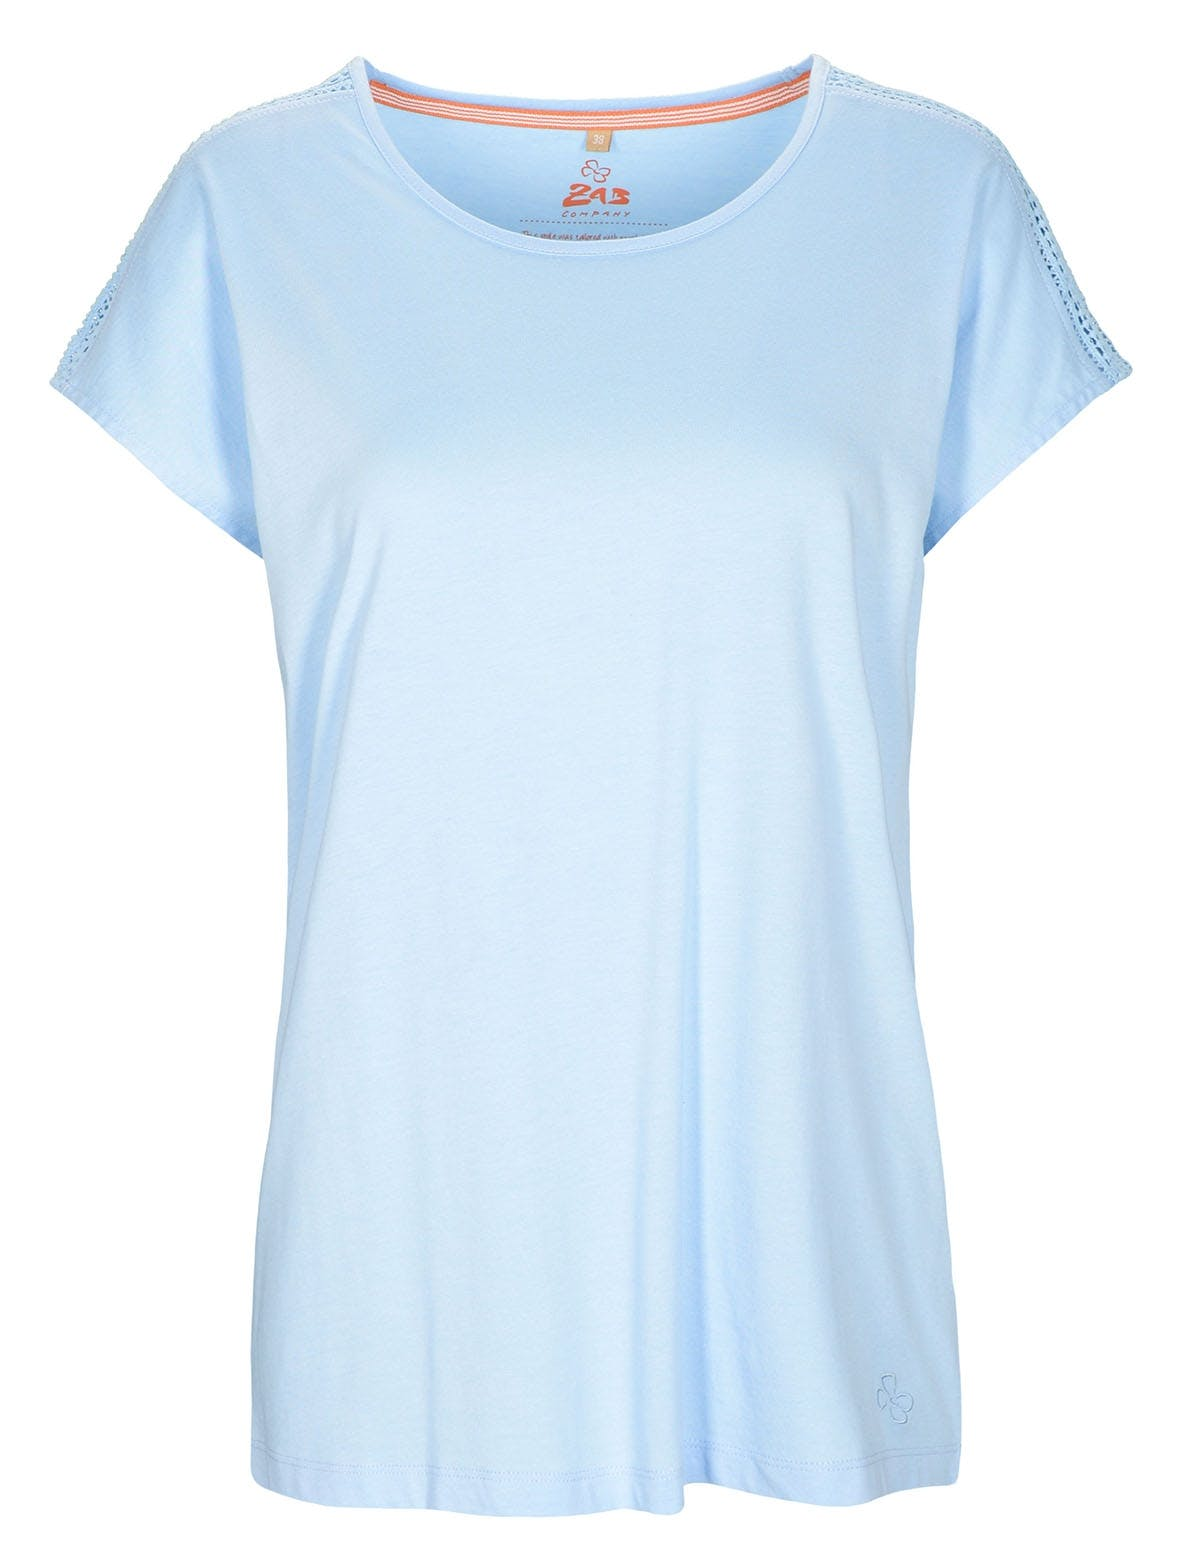 FRY DAY T-Shirt - Sky Blue